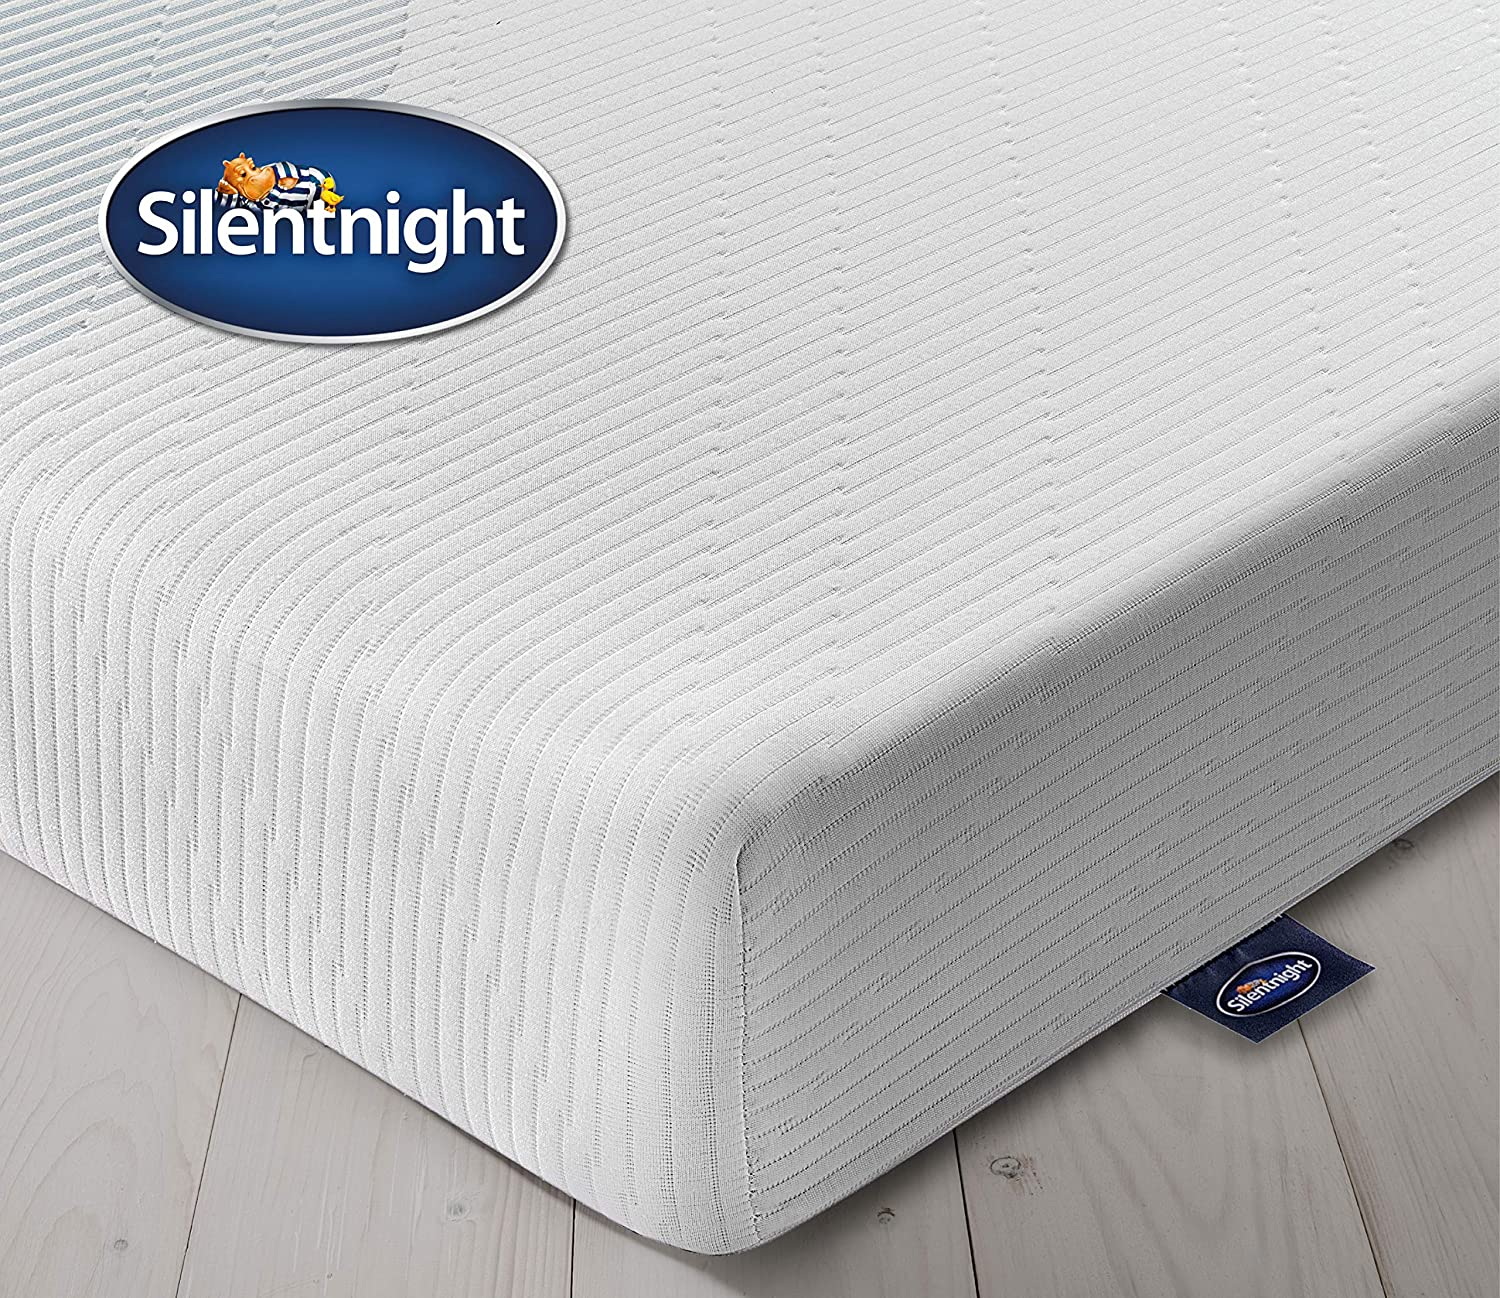 Top 10 Best Mattress Toppers Reviews in 2020 8